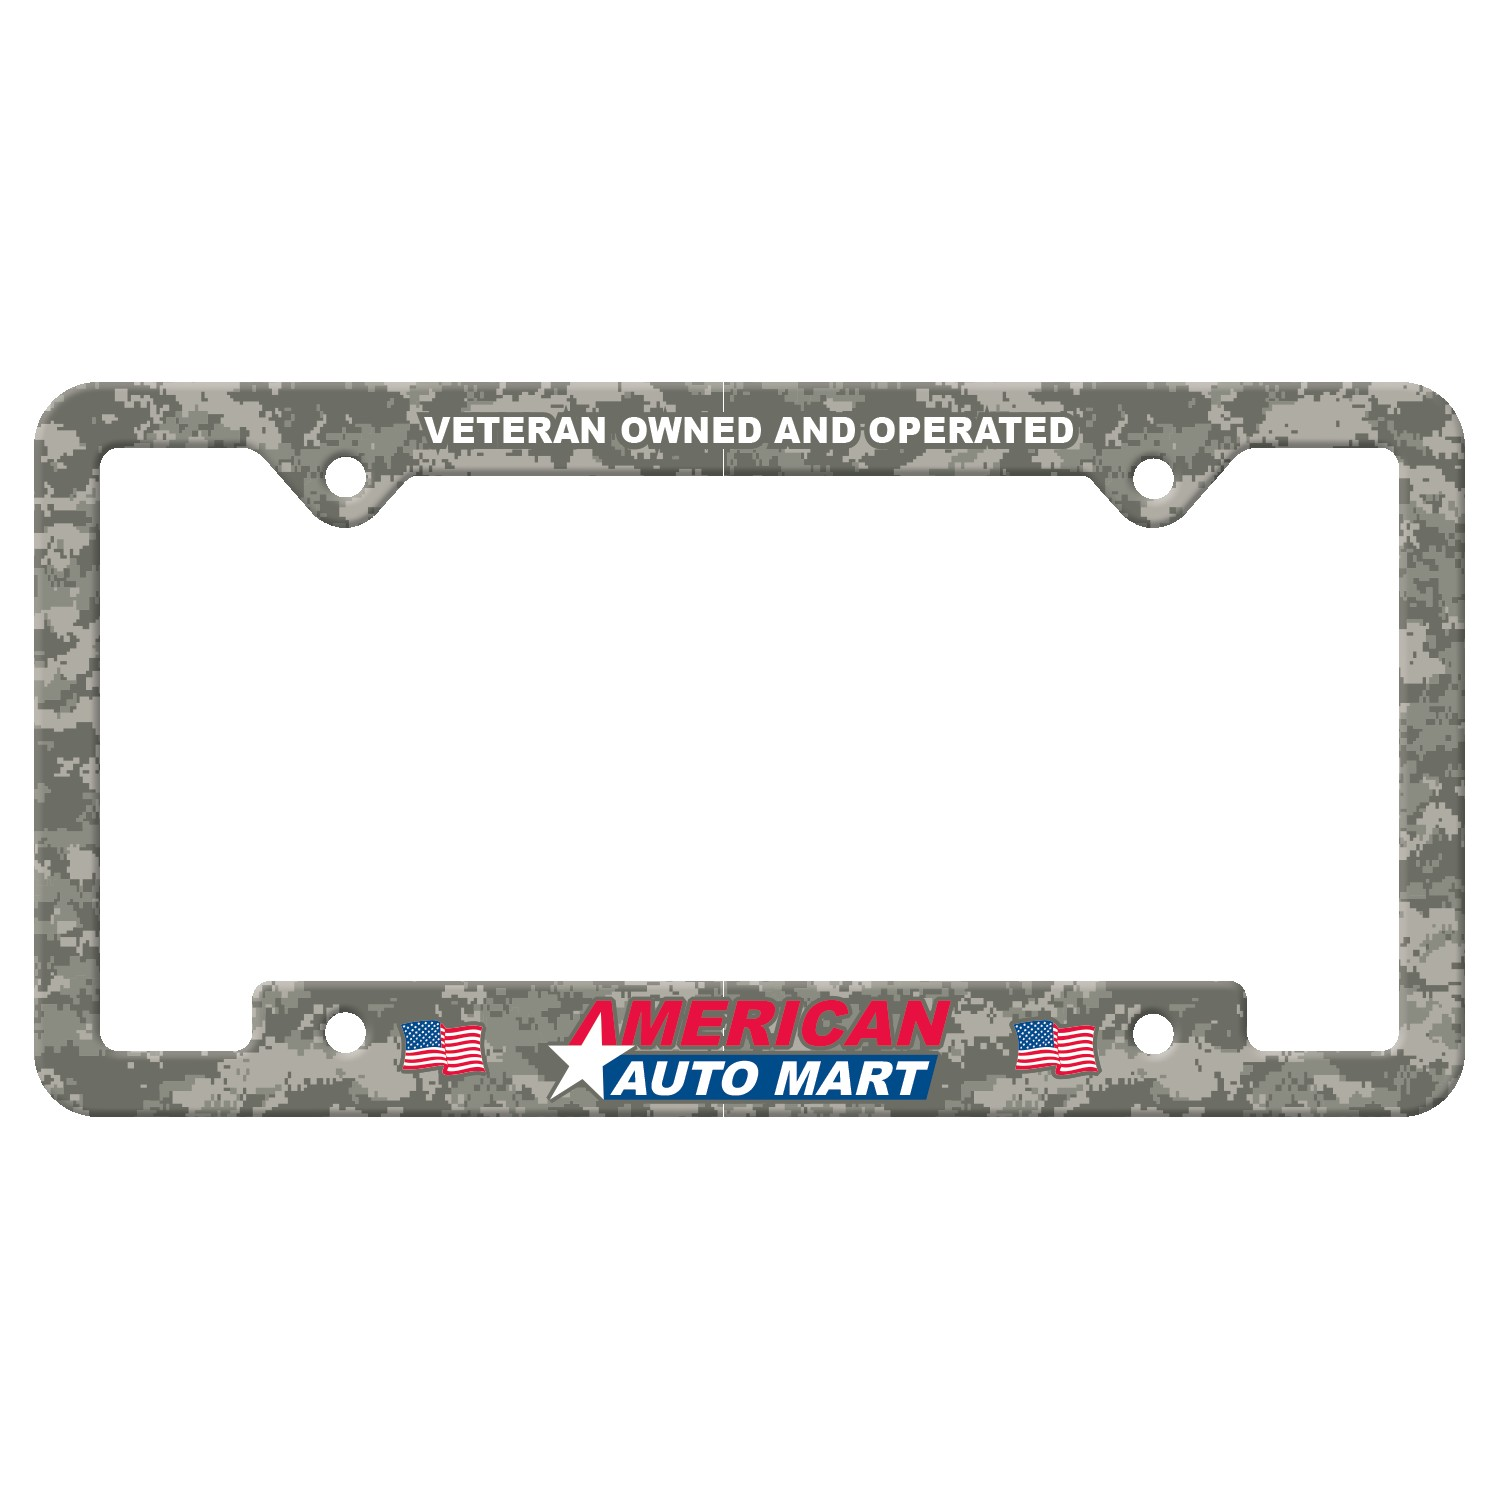 735529299-183 - Auto License Frame Full Color w/ 4 Holes & Large Bottom Jutted Panel - thumbnail